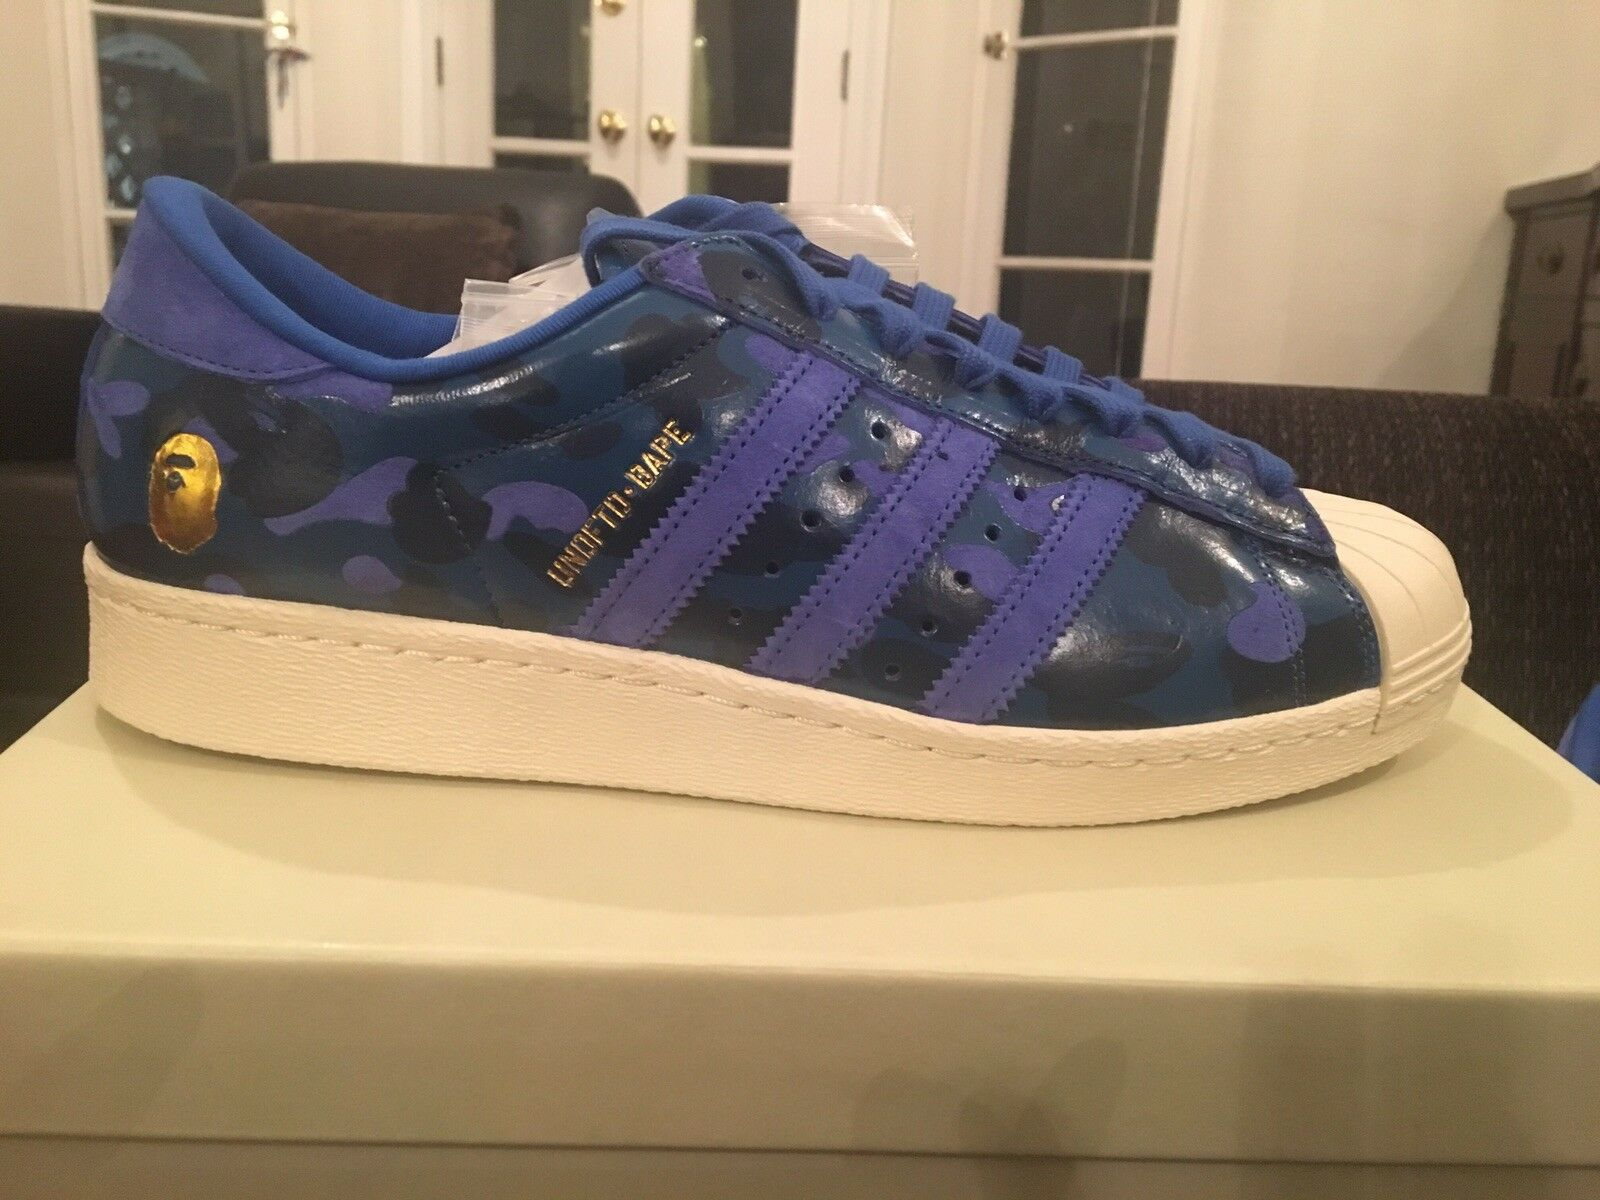 Bape Undefeated Adidas Superstar v80  Sz 10.5 s74775 bluee camo